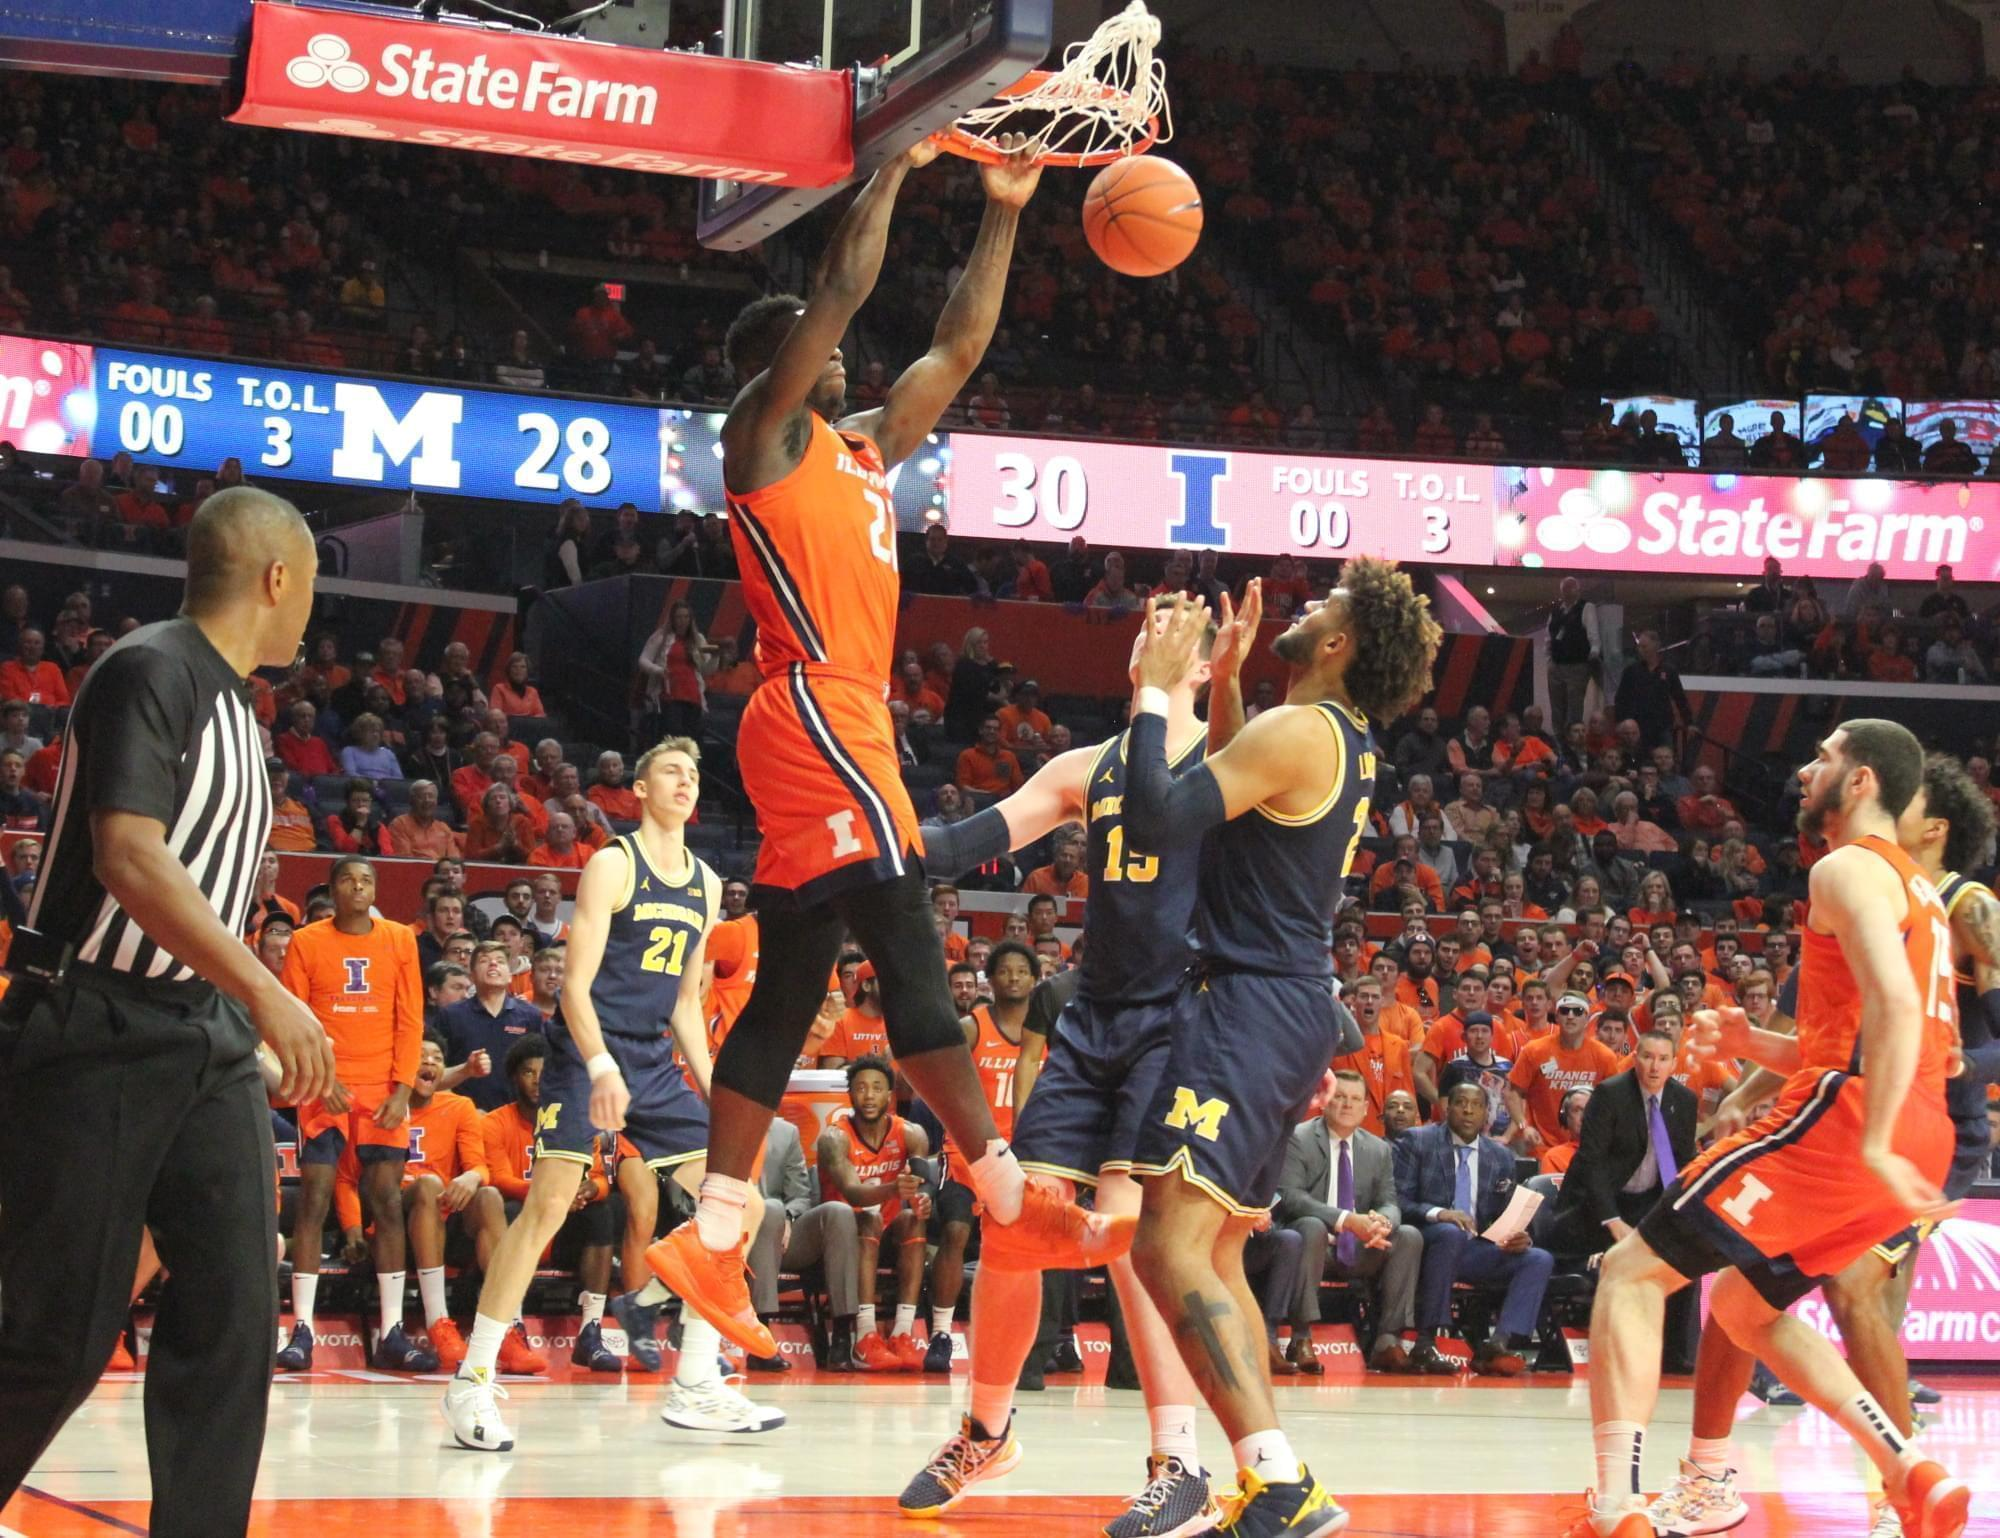 Kofi Cockburn slams in two of his 19 points during Illinois' 71-62 win over Michigan on Wednesday in Champaign.